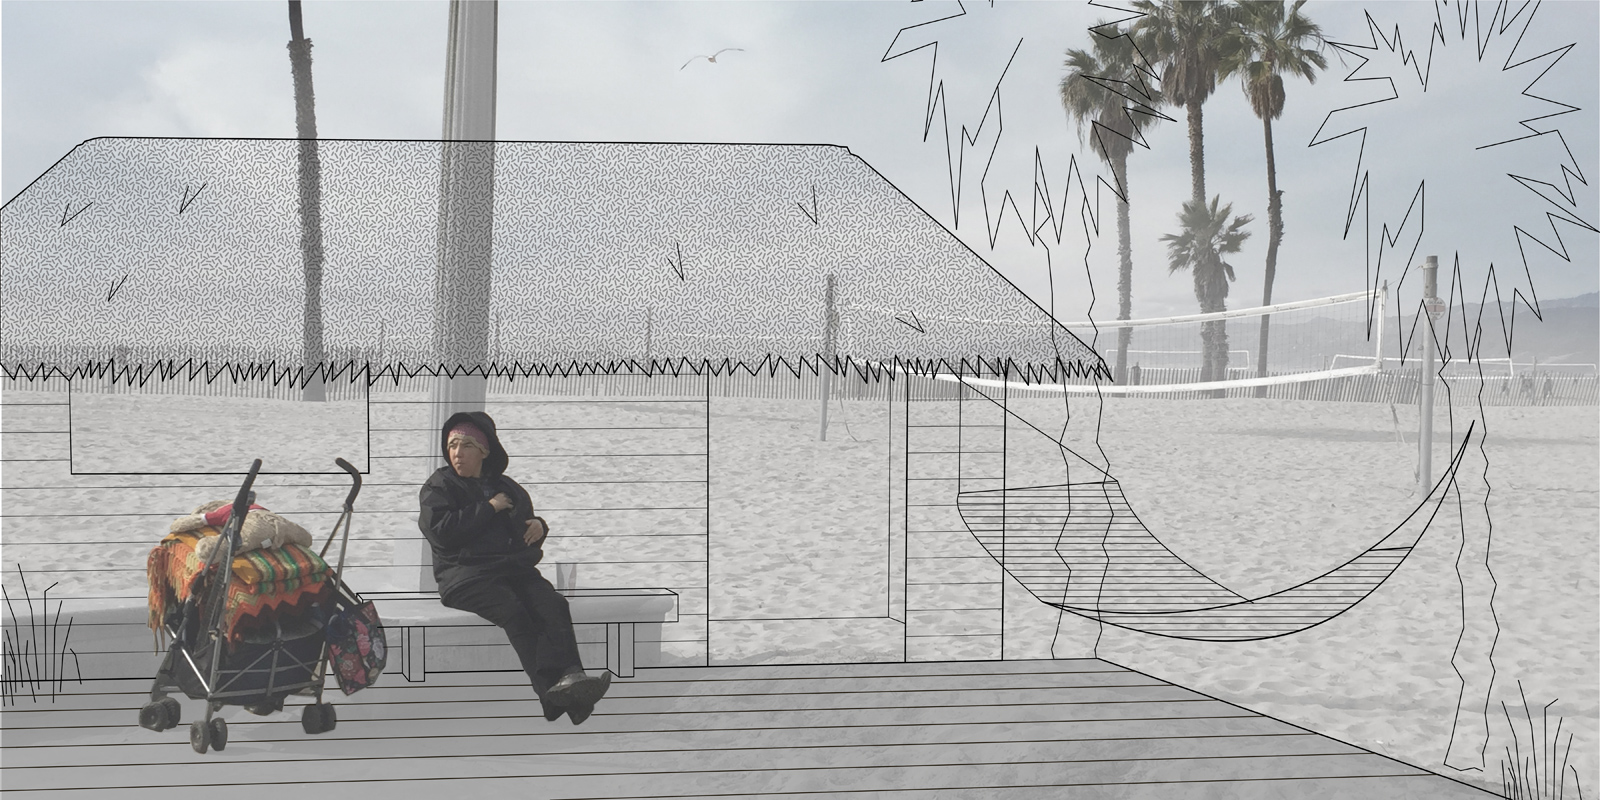 homelessness in los angeles essay